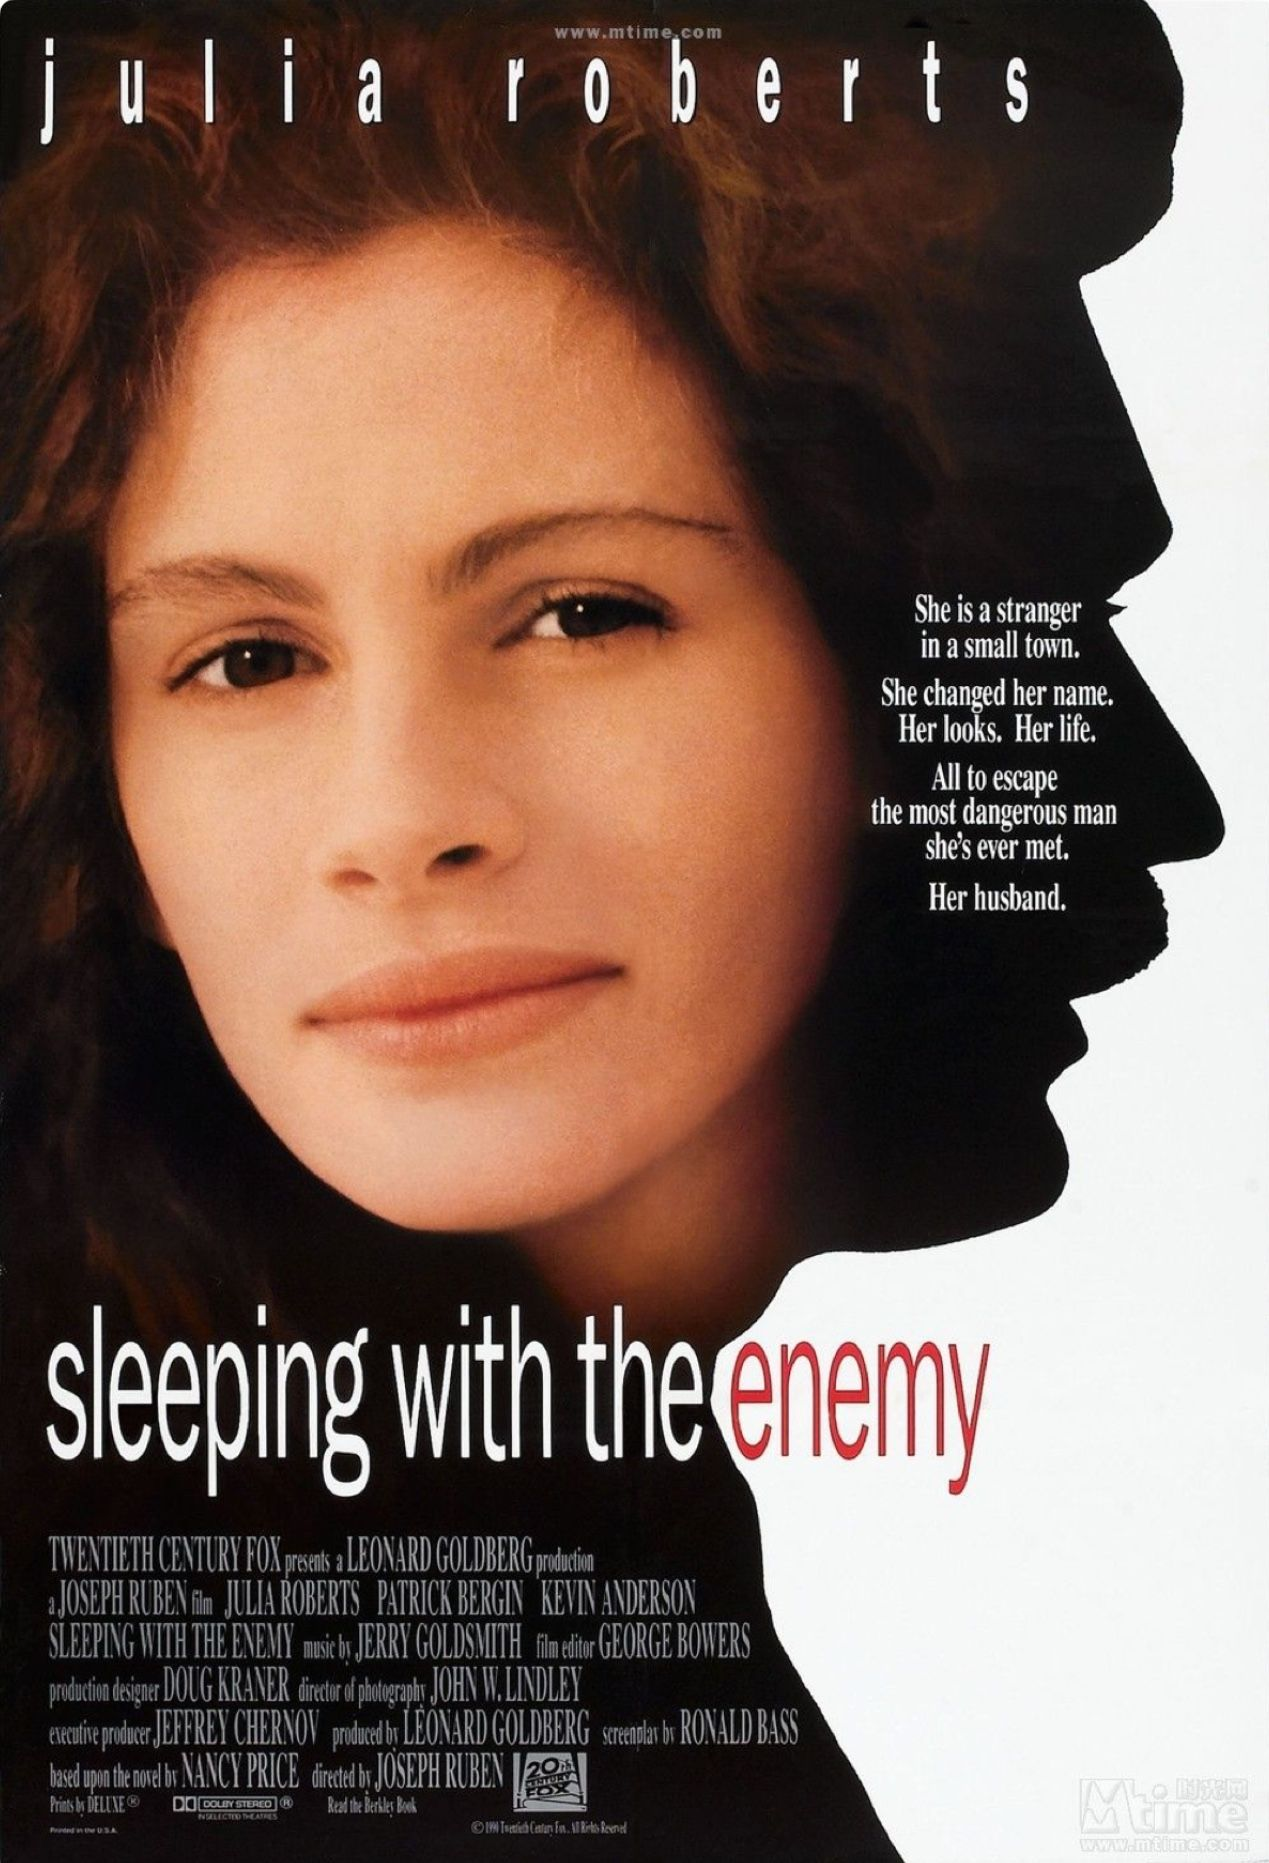 Sleeping With The Enemy ▪️ Joseph Ruben (1991) 6.2 | ภาพยนตร์